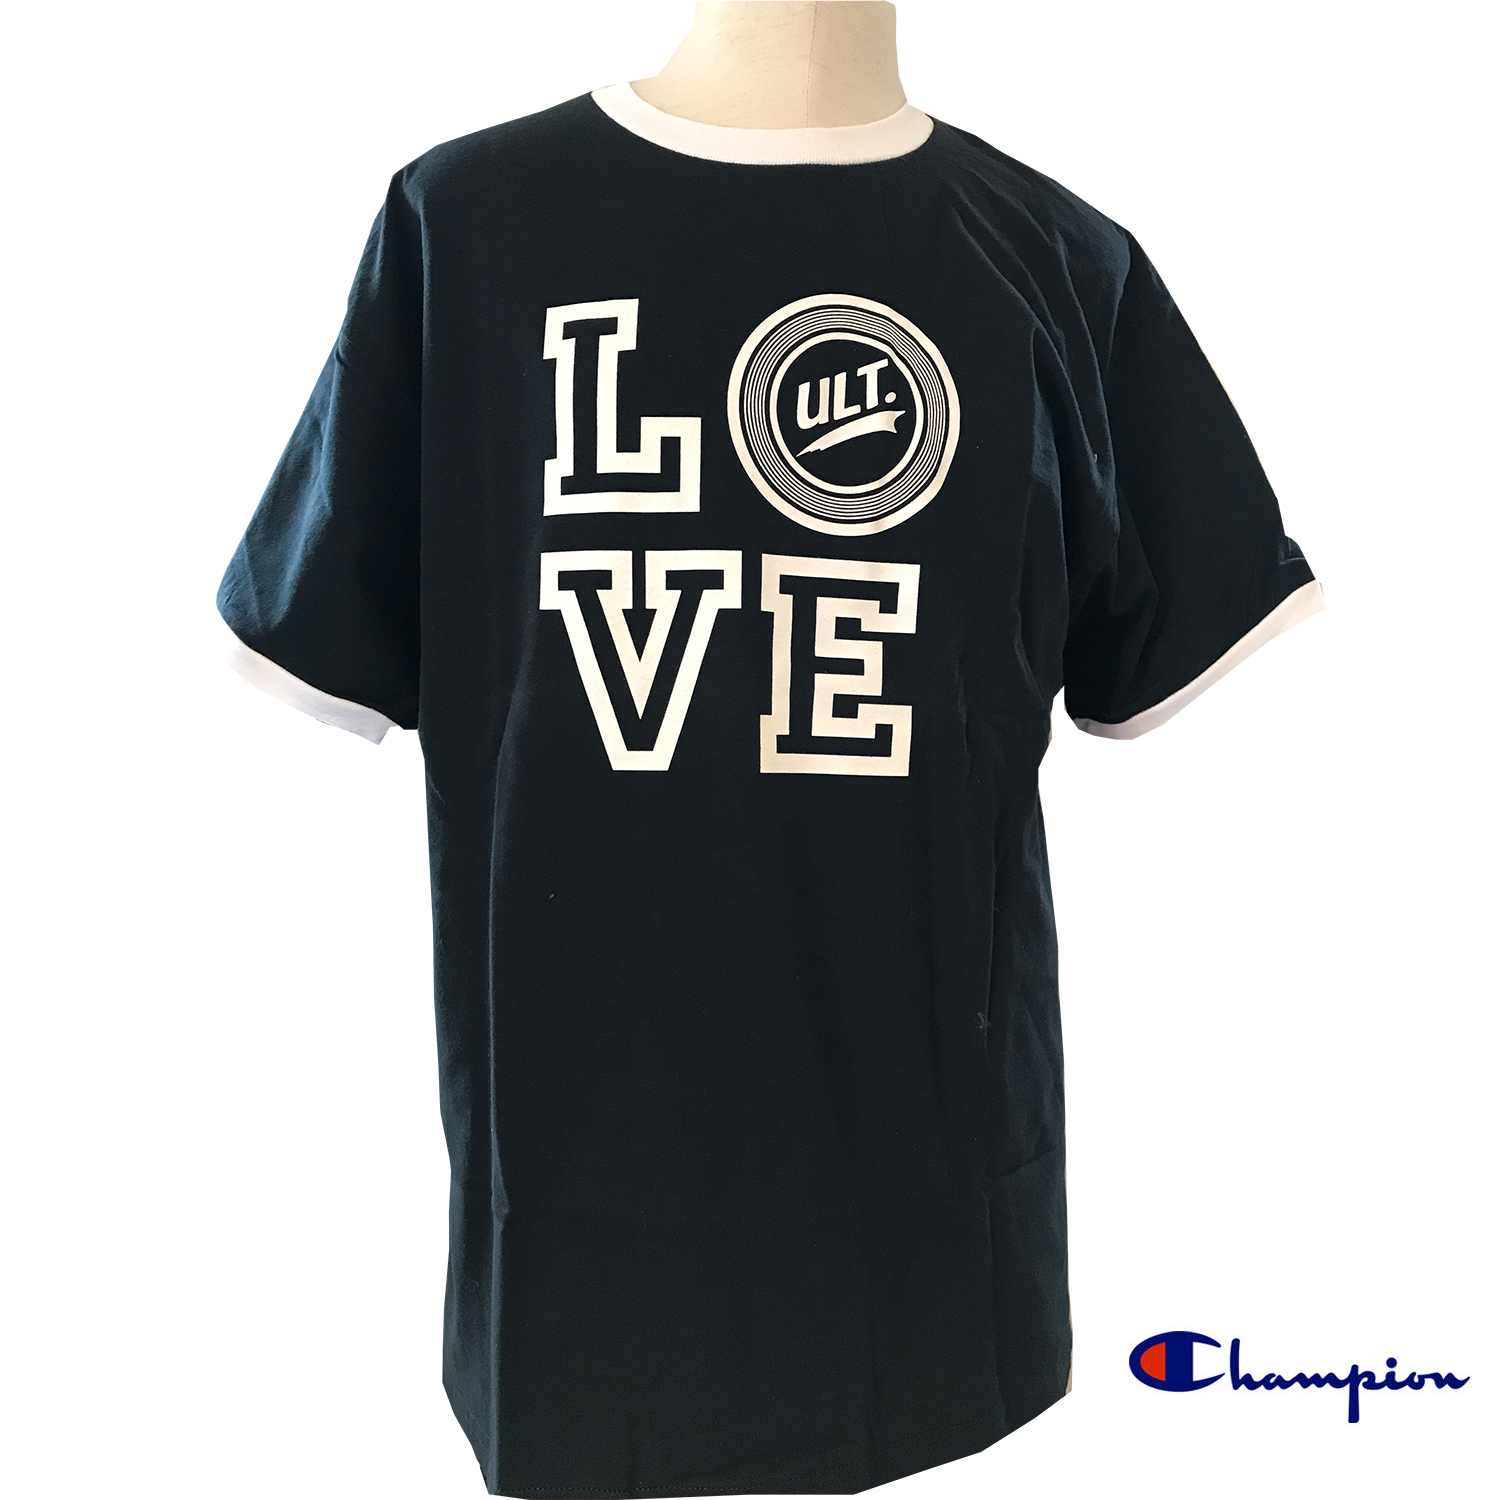 LOVE ULT Champion Tシャツ